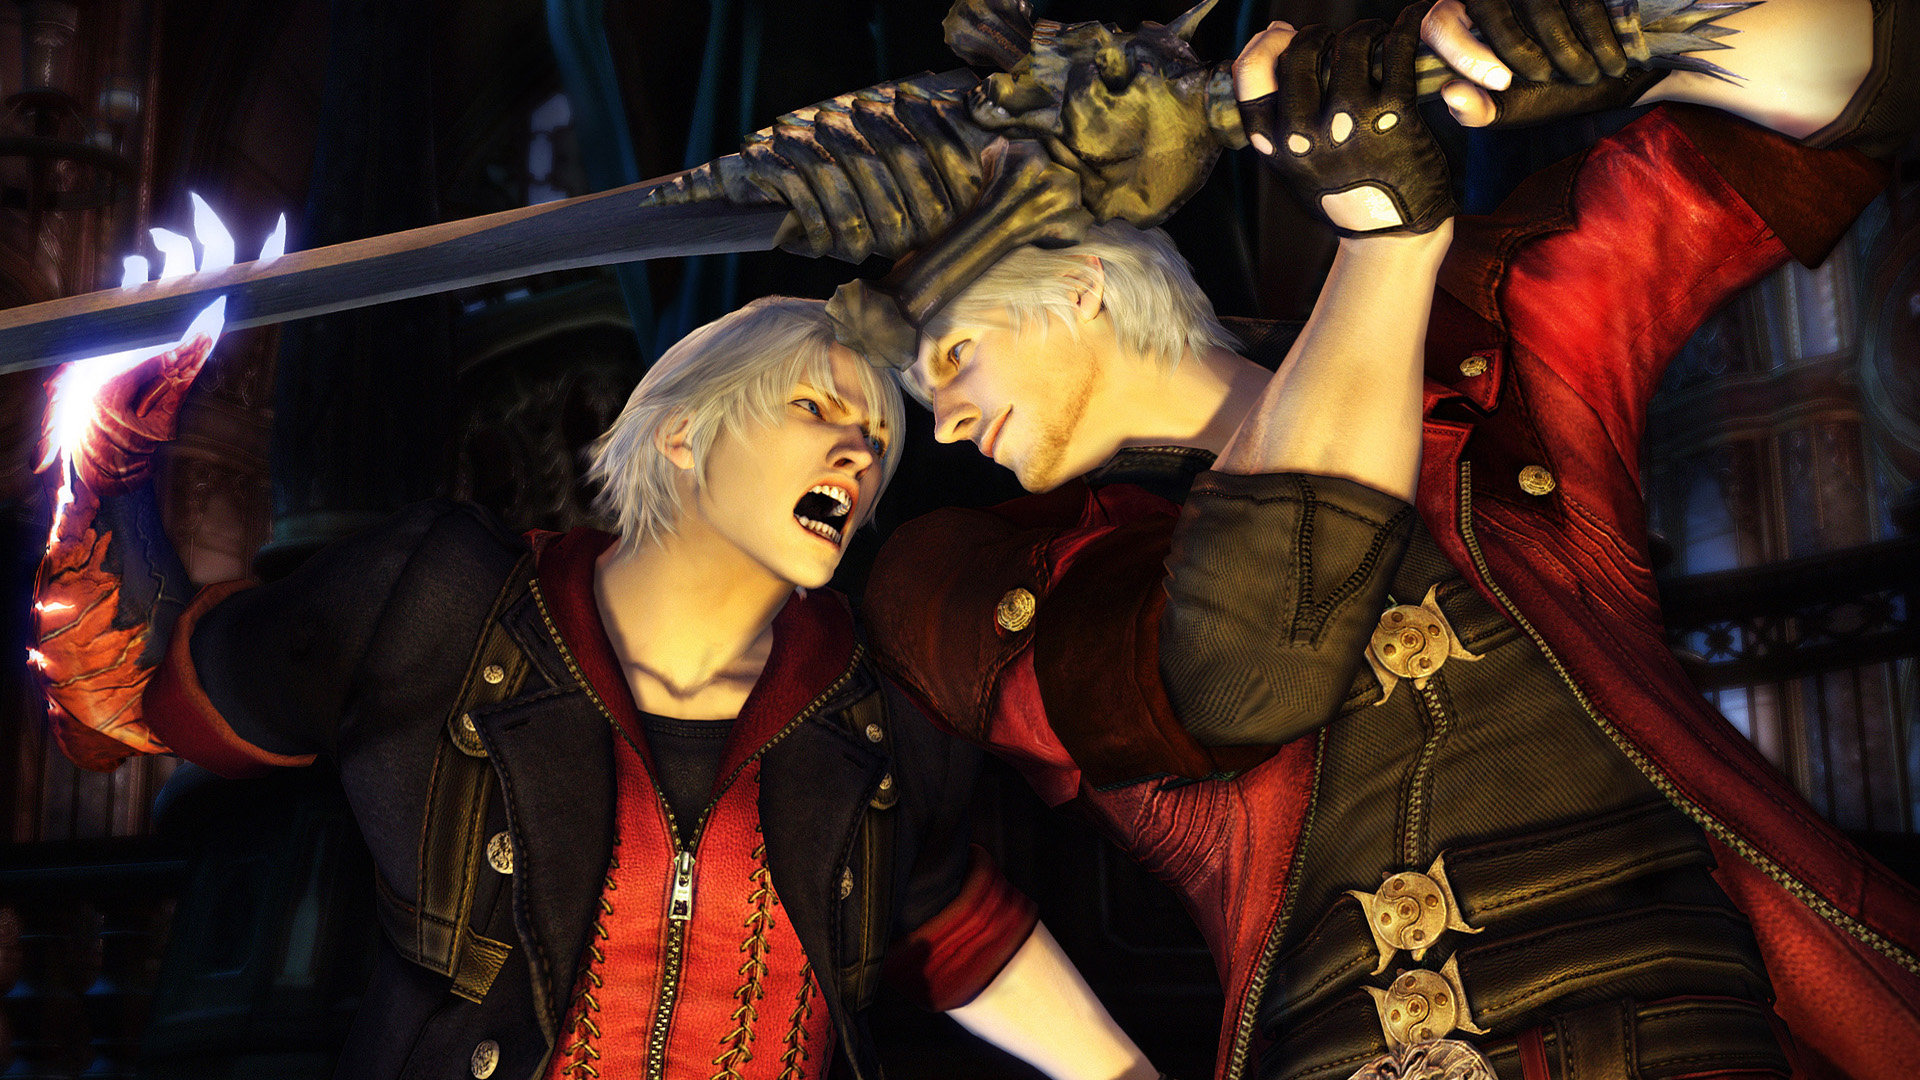 Devil May Cry 4 Wallpapers 1920x1080 Full Hd 1080p Desktop